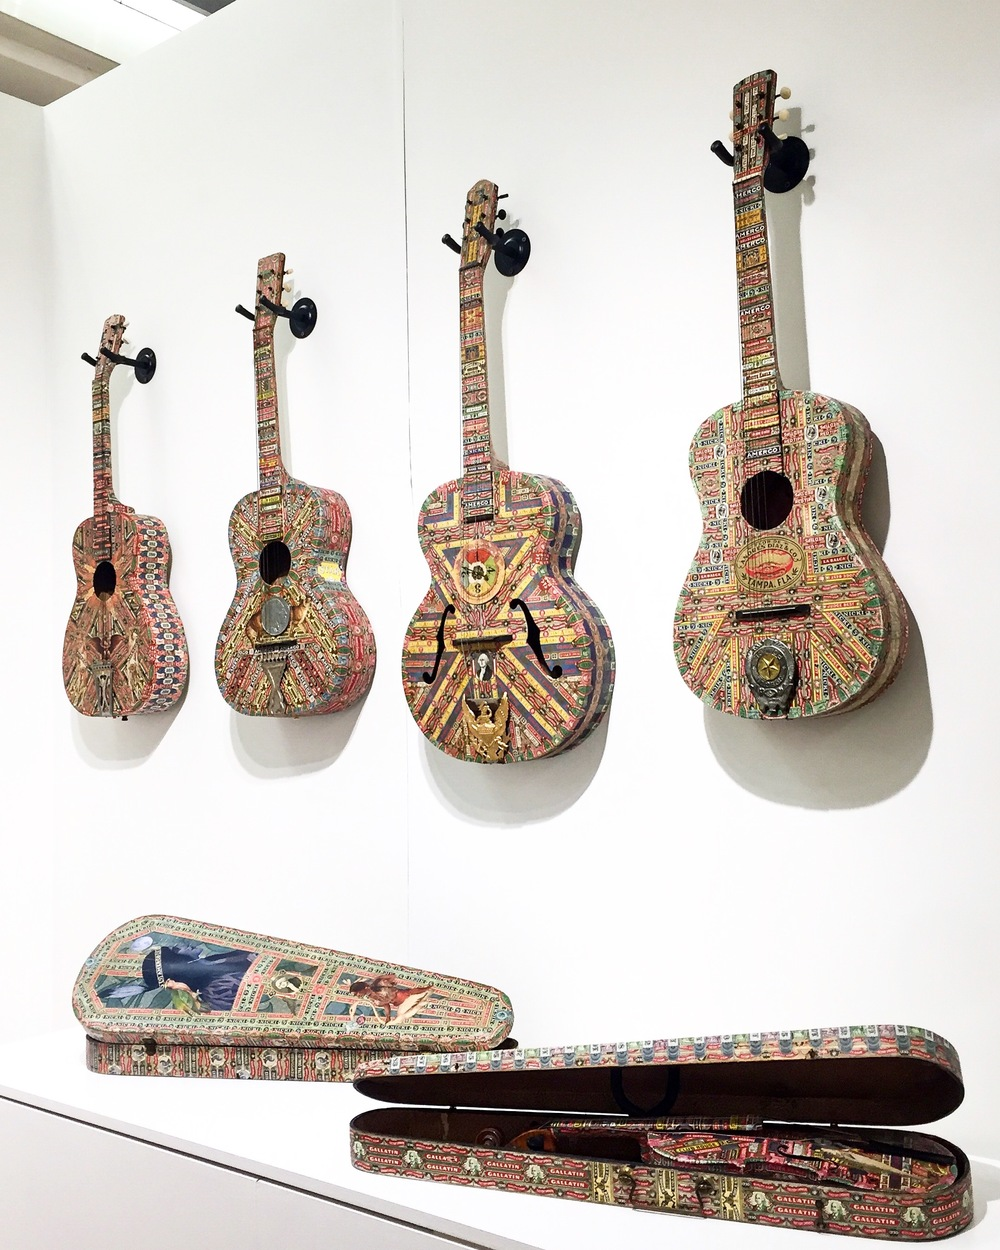 I  ncredible cigar band collaged musical instruments by Cuban-American artist Felipe Jesus Consalvos presented by   Fleisher Ollman  .